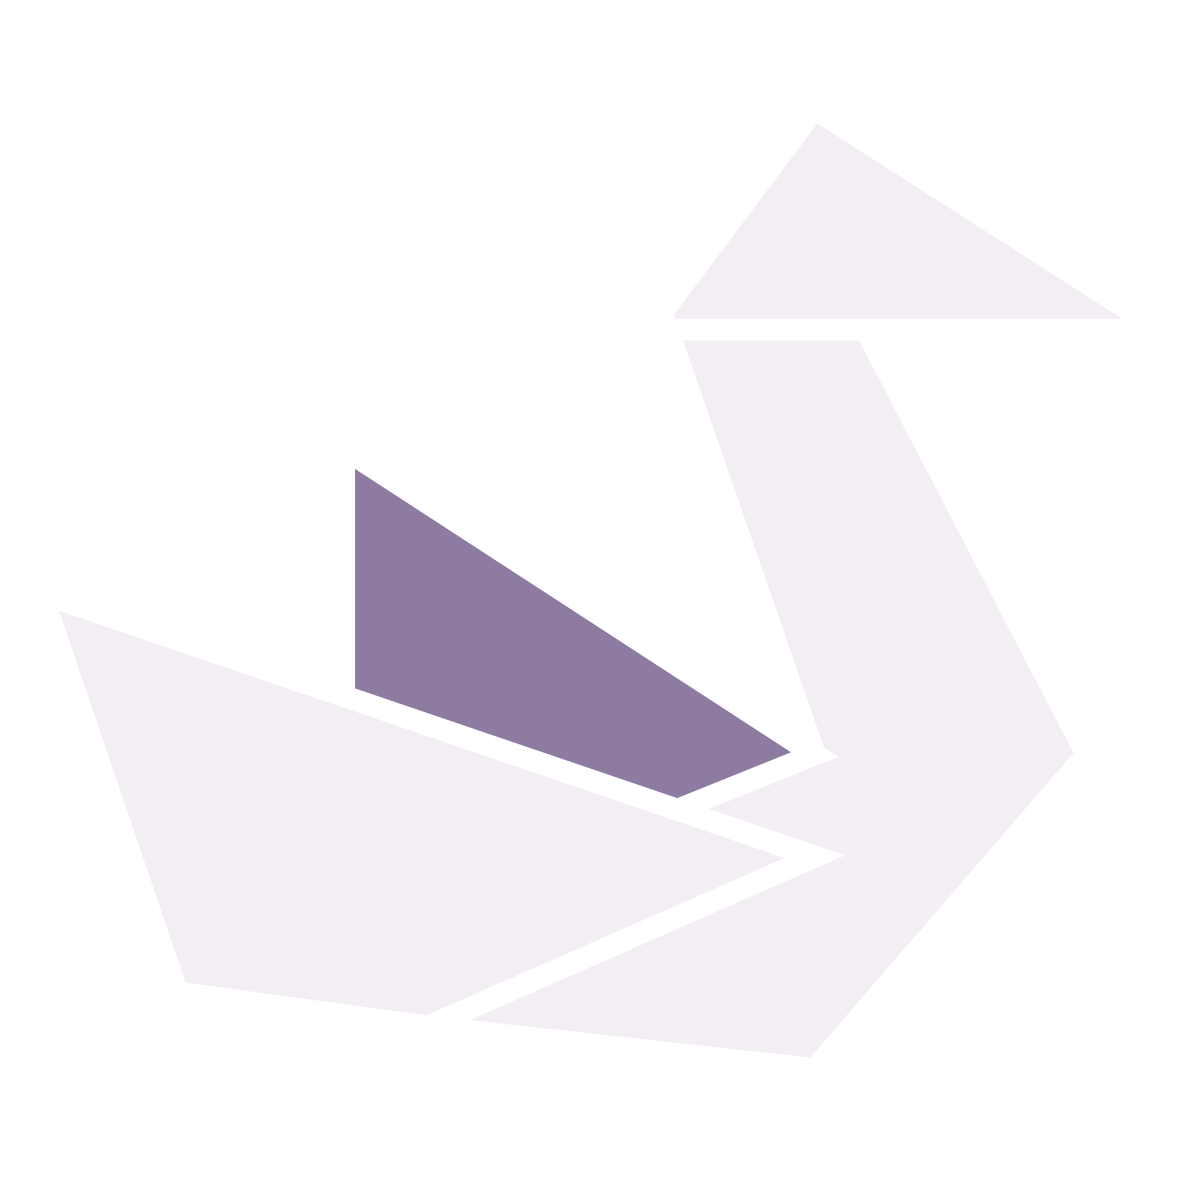 icon-campaign-delivery-inverted